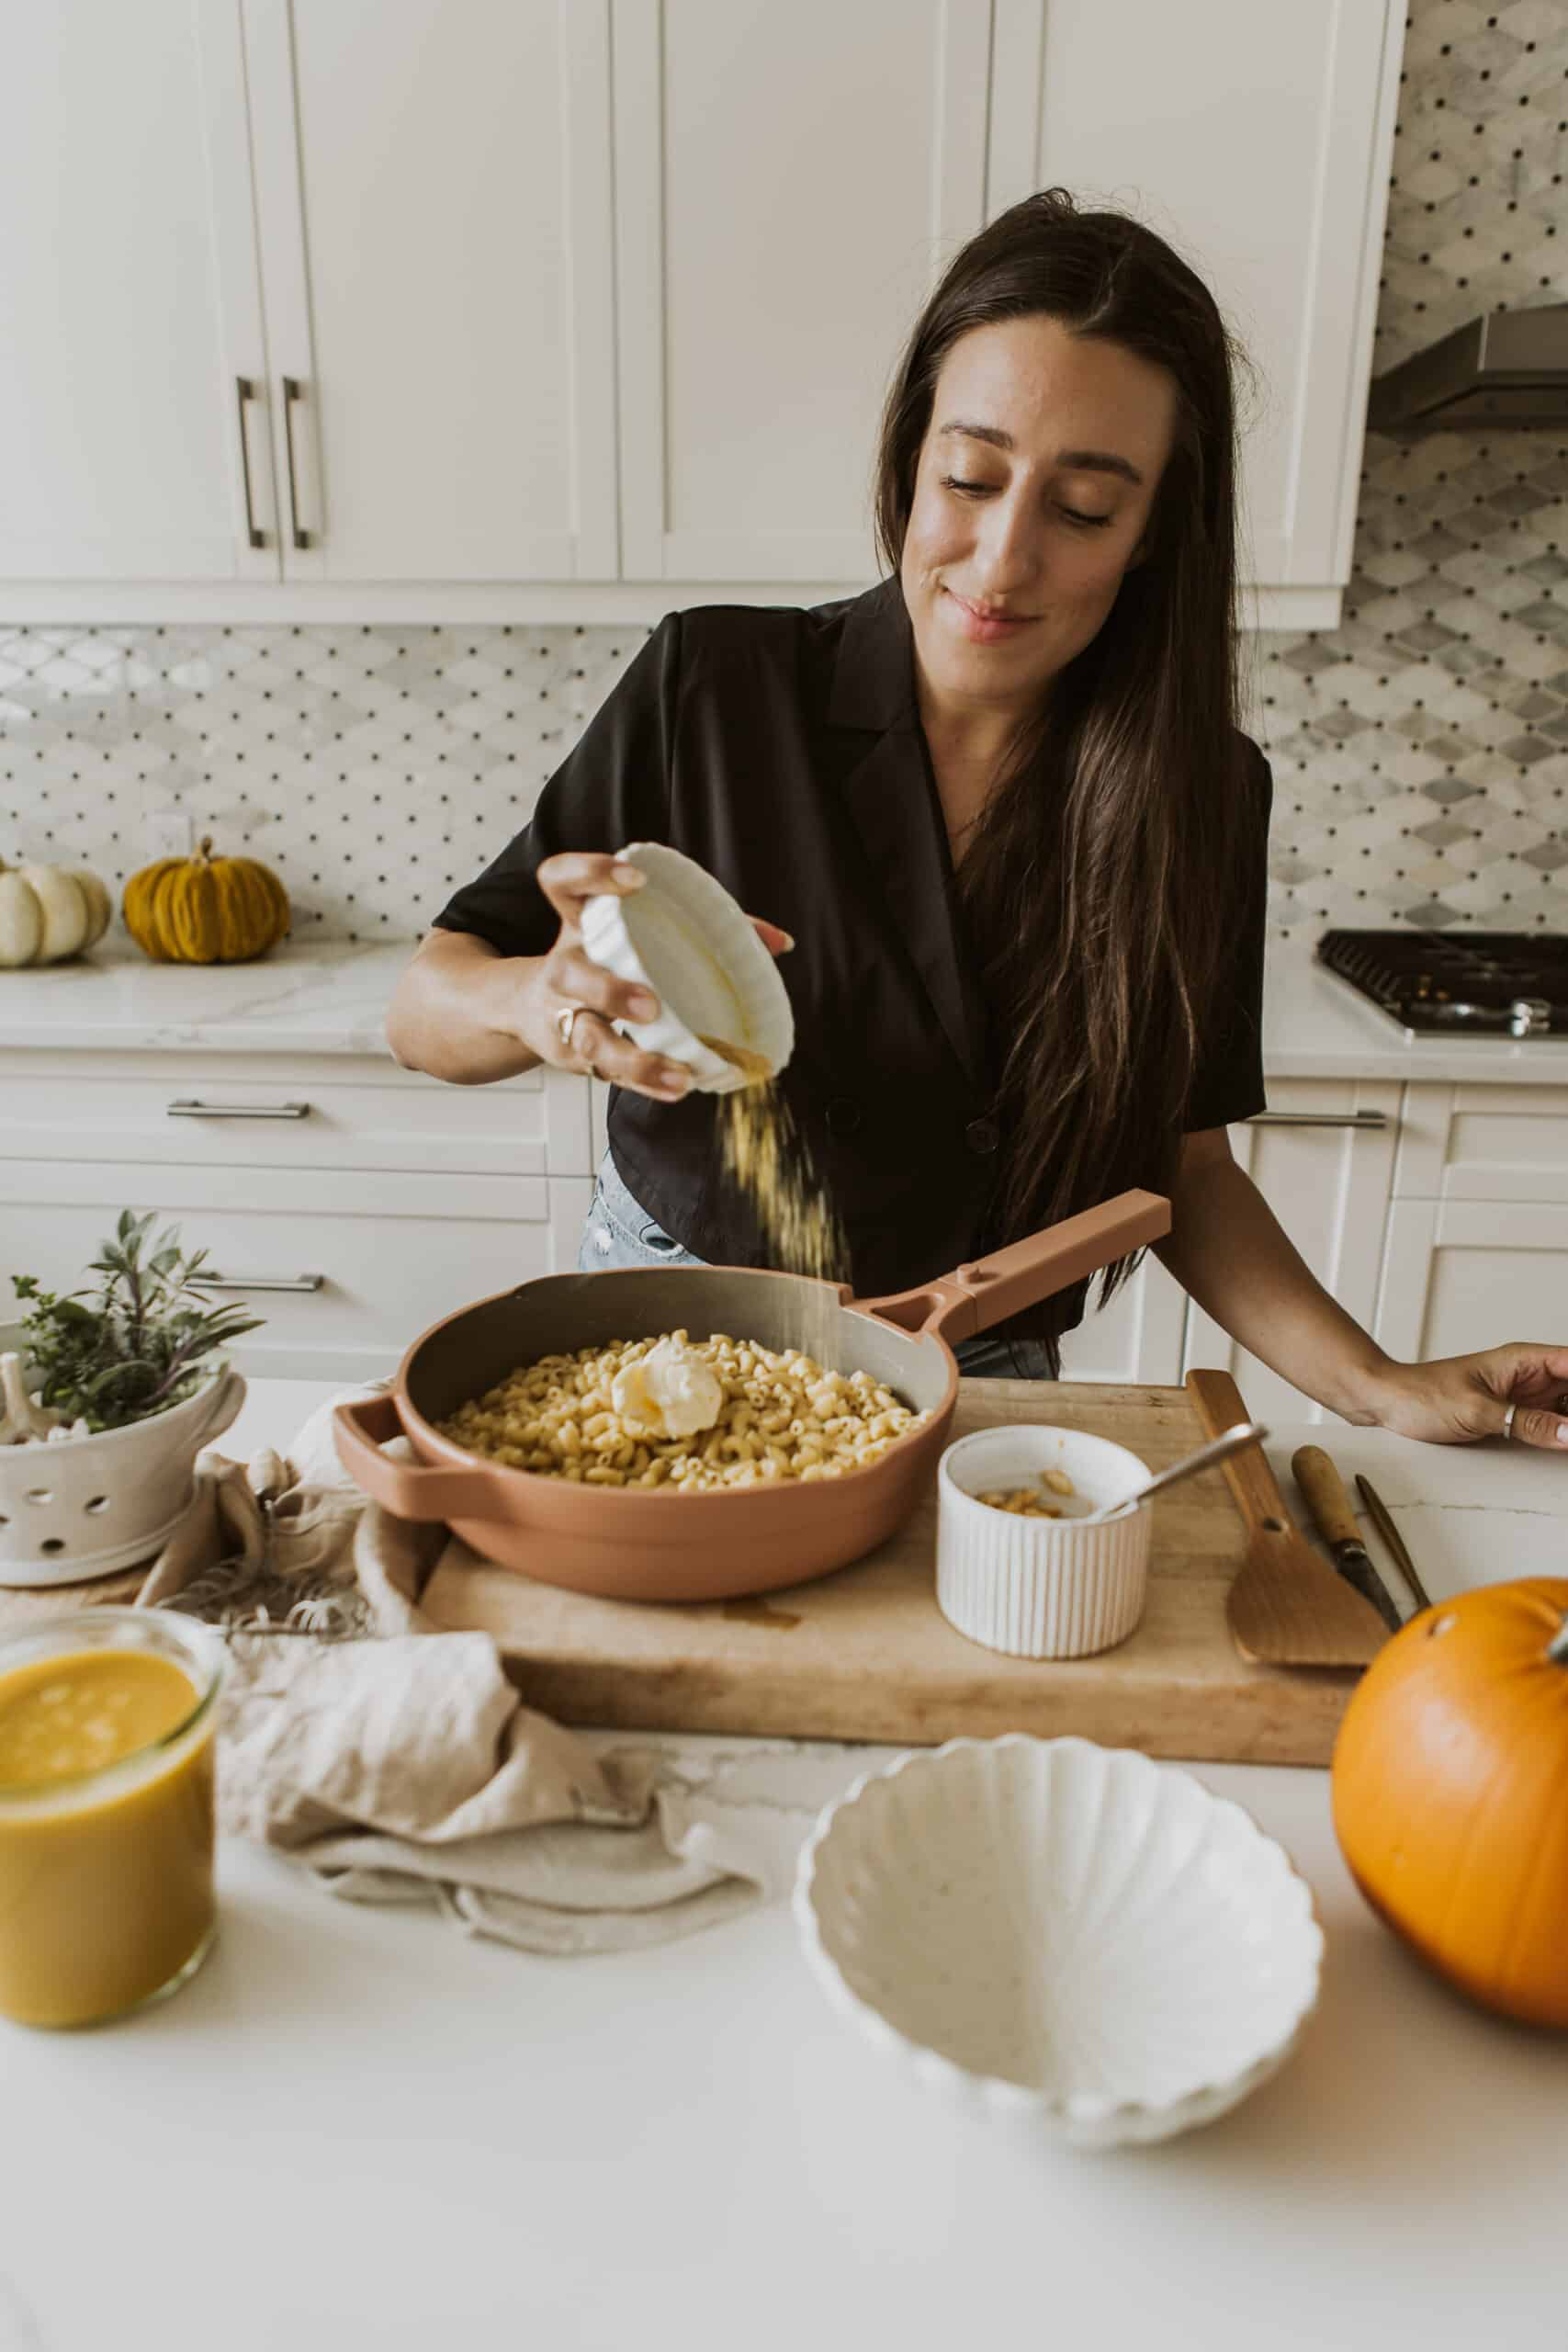 Maria pouring toppings on Vegan Pumpkin Mac and Cheese